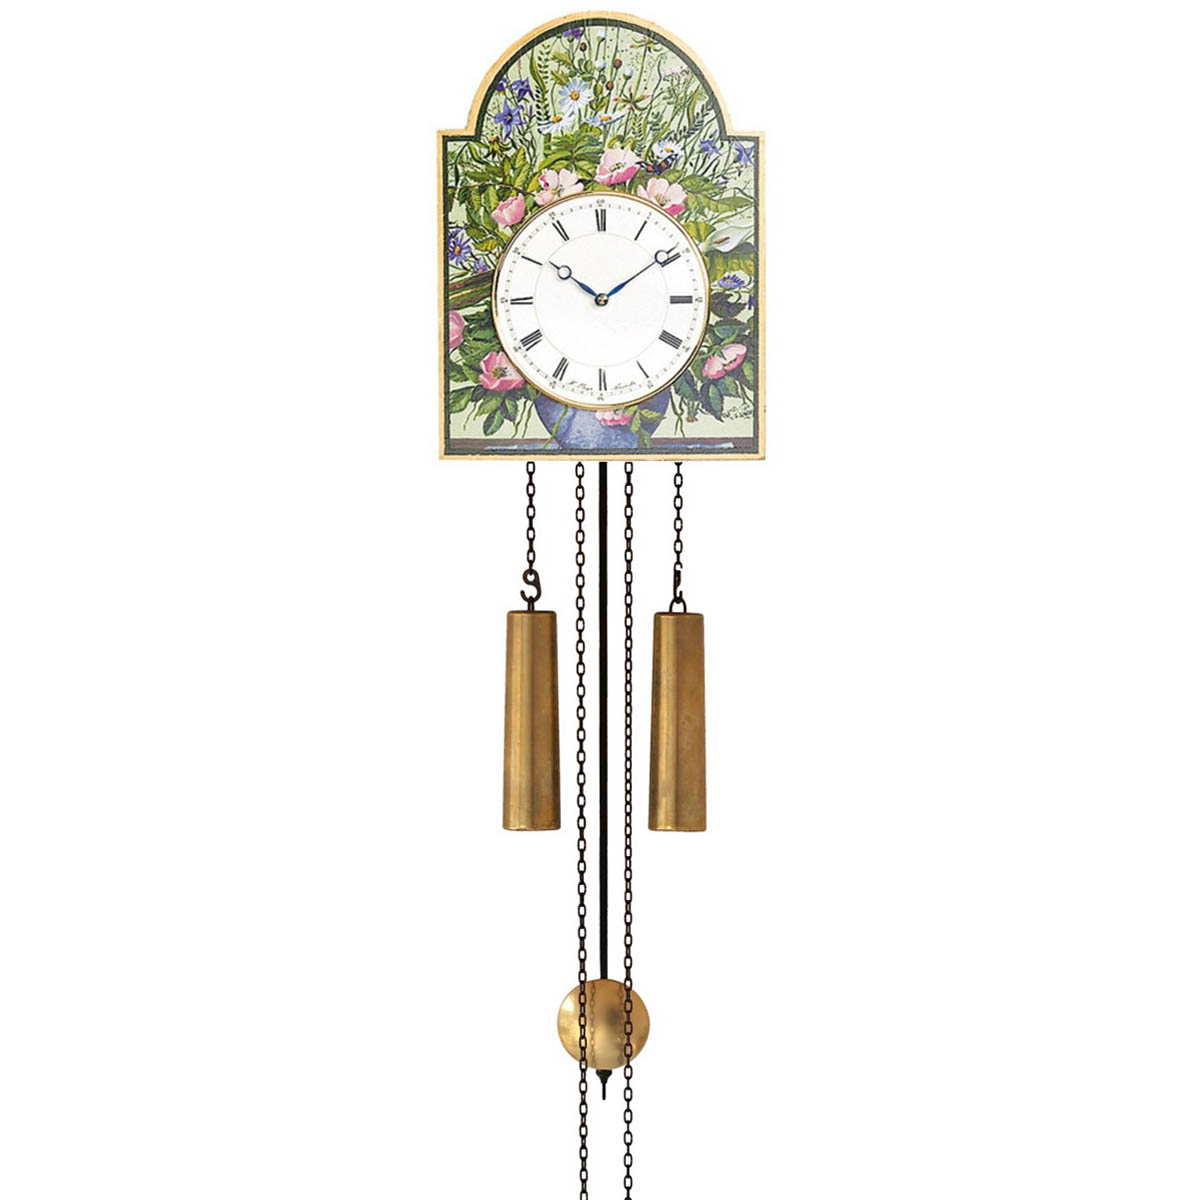 WU177 Traditional Wall Clock